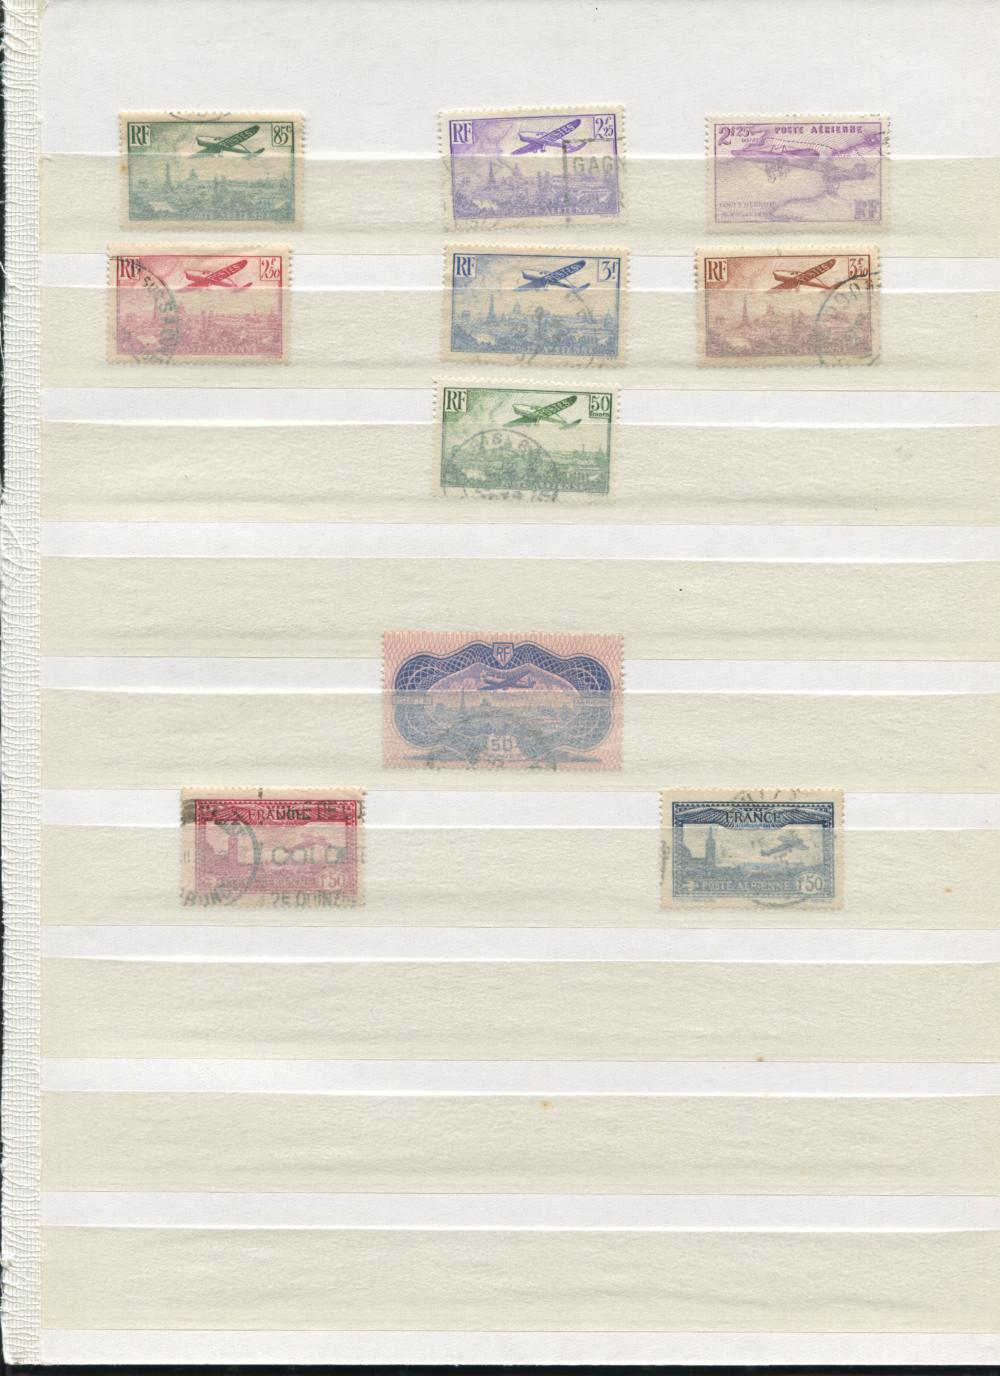 France Air Post Stamp Collection 2